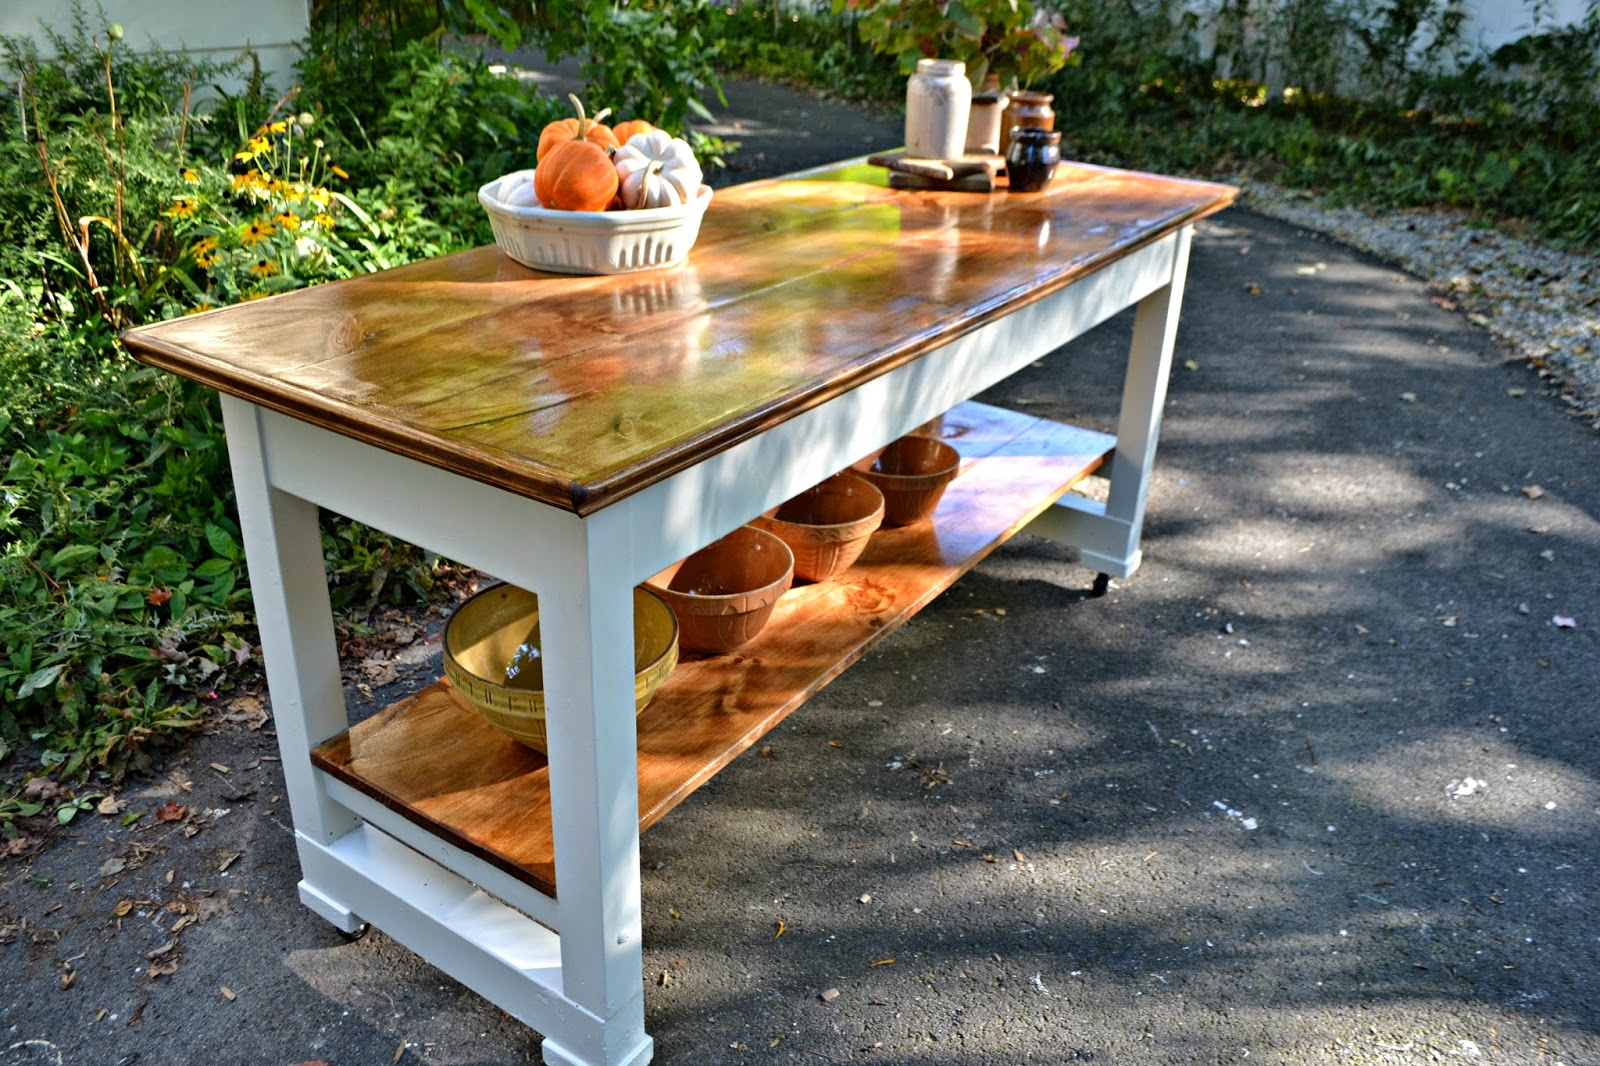 a vintage work bench turned kitchen kitchen work table Tuesday September 23